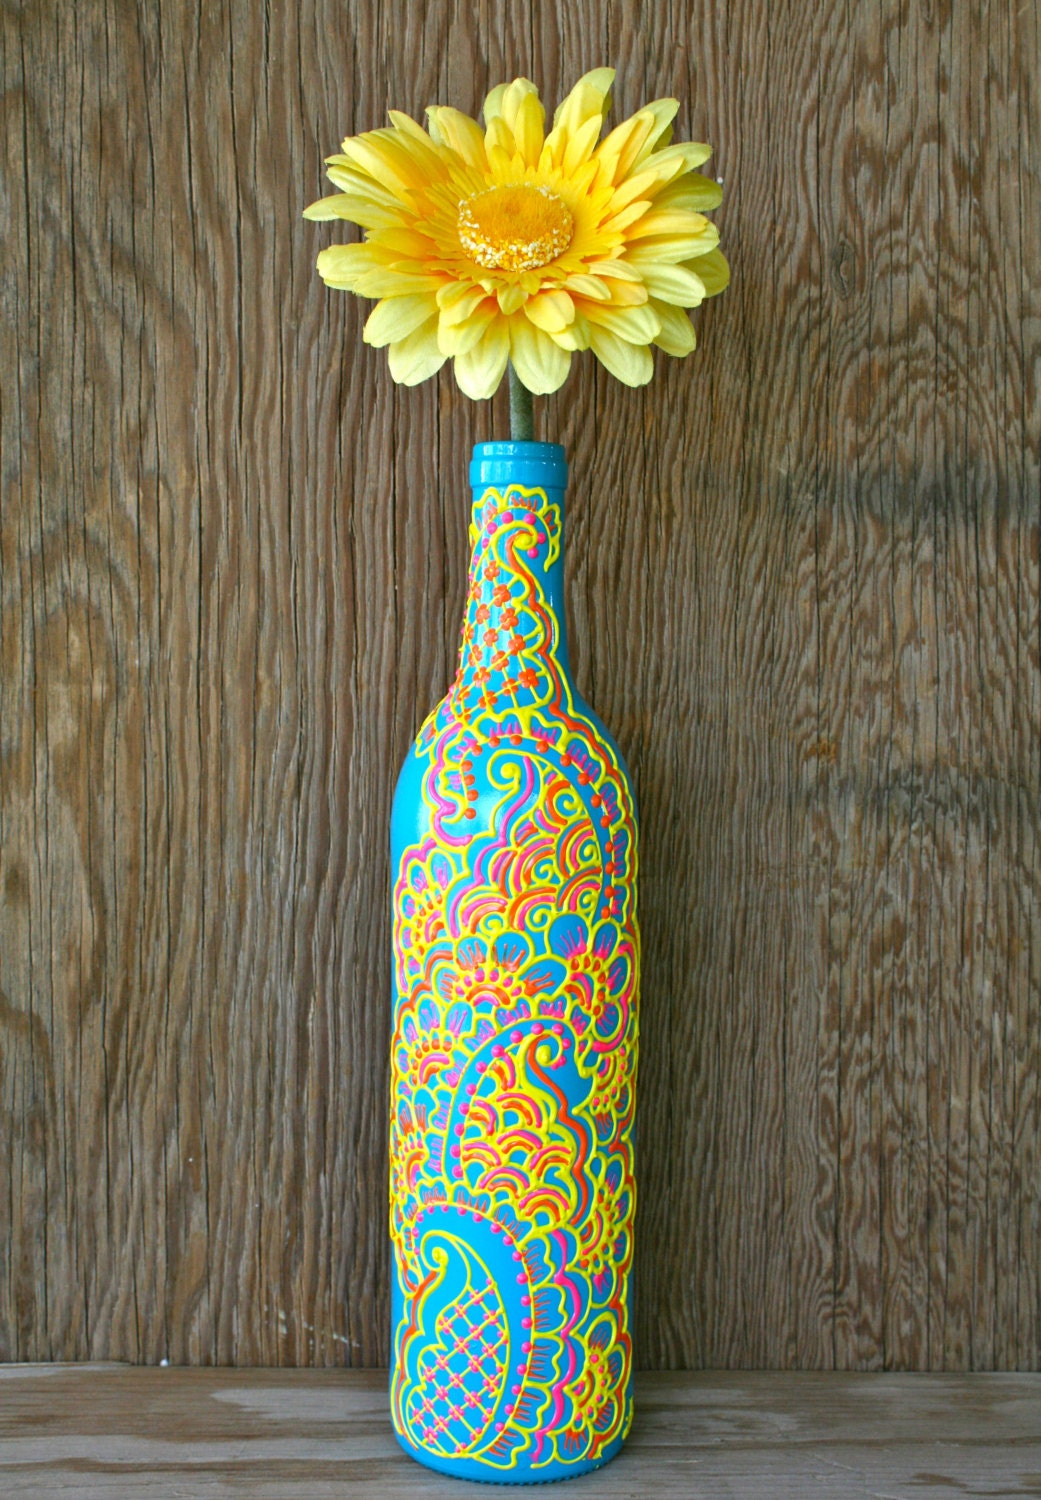 Hand Painted Wine bottle Vase Turquoise bottle with by  : ilfullxfull449364173dtis from www.etsy.com size 1041 x 1500 jpeg 518kB